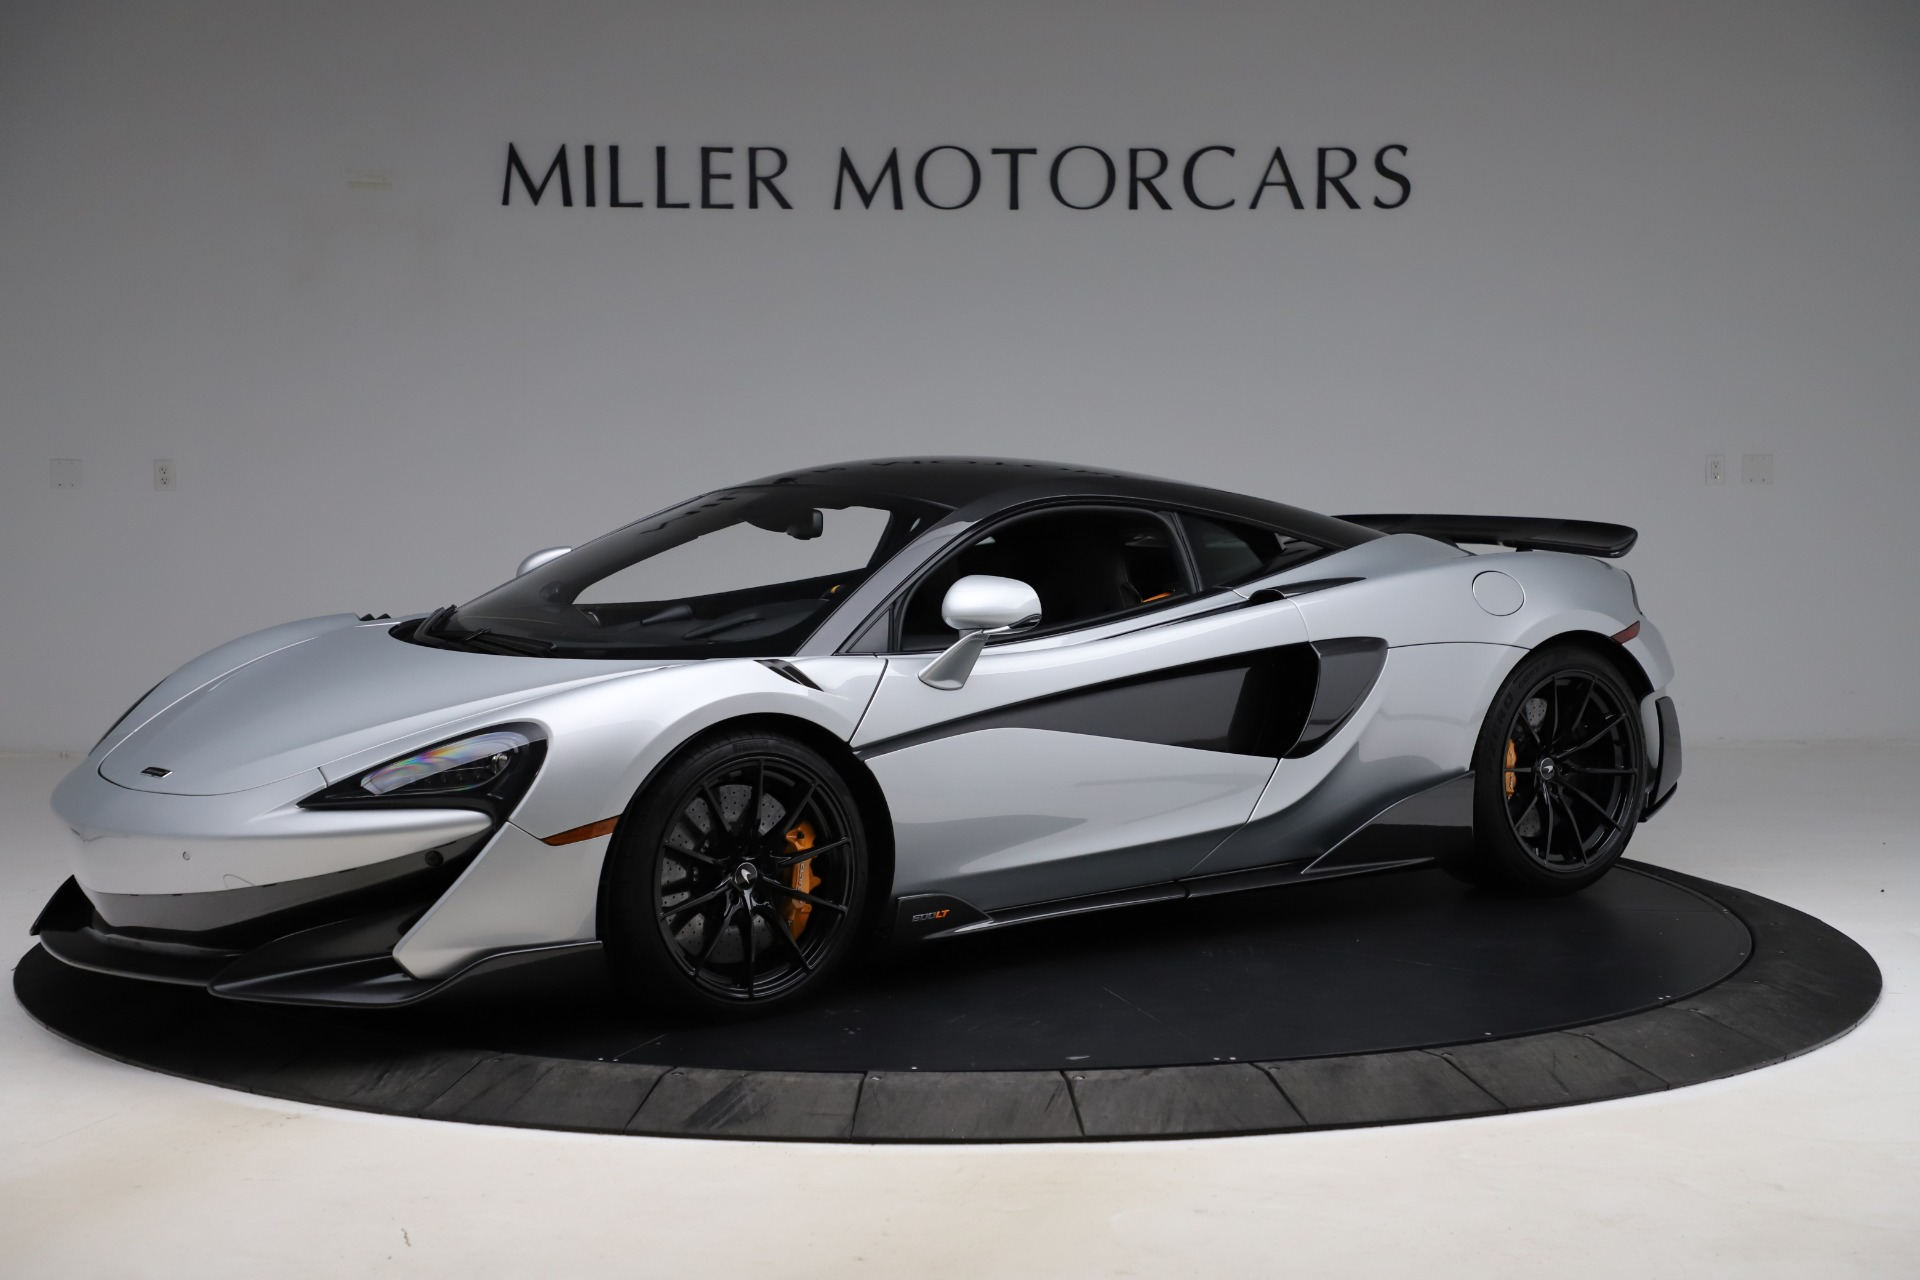 Used 2019 McLaren 600LT for sale $223,900 at Bentley Greenwich in Greenwich CT 06830 1